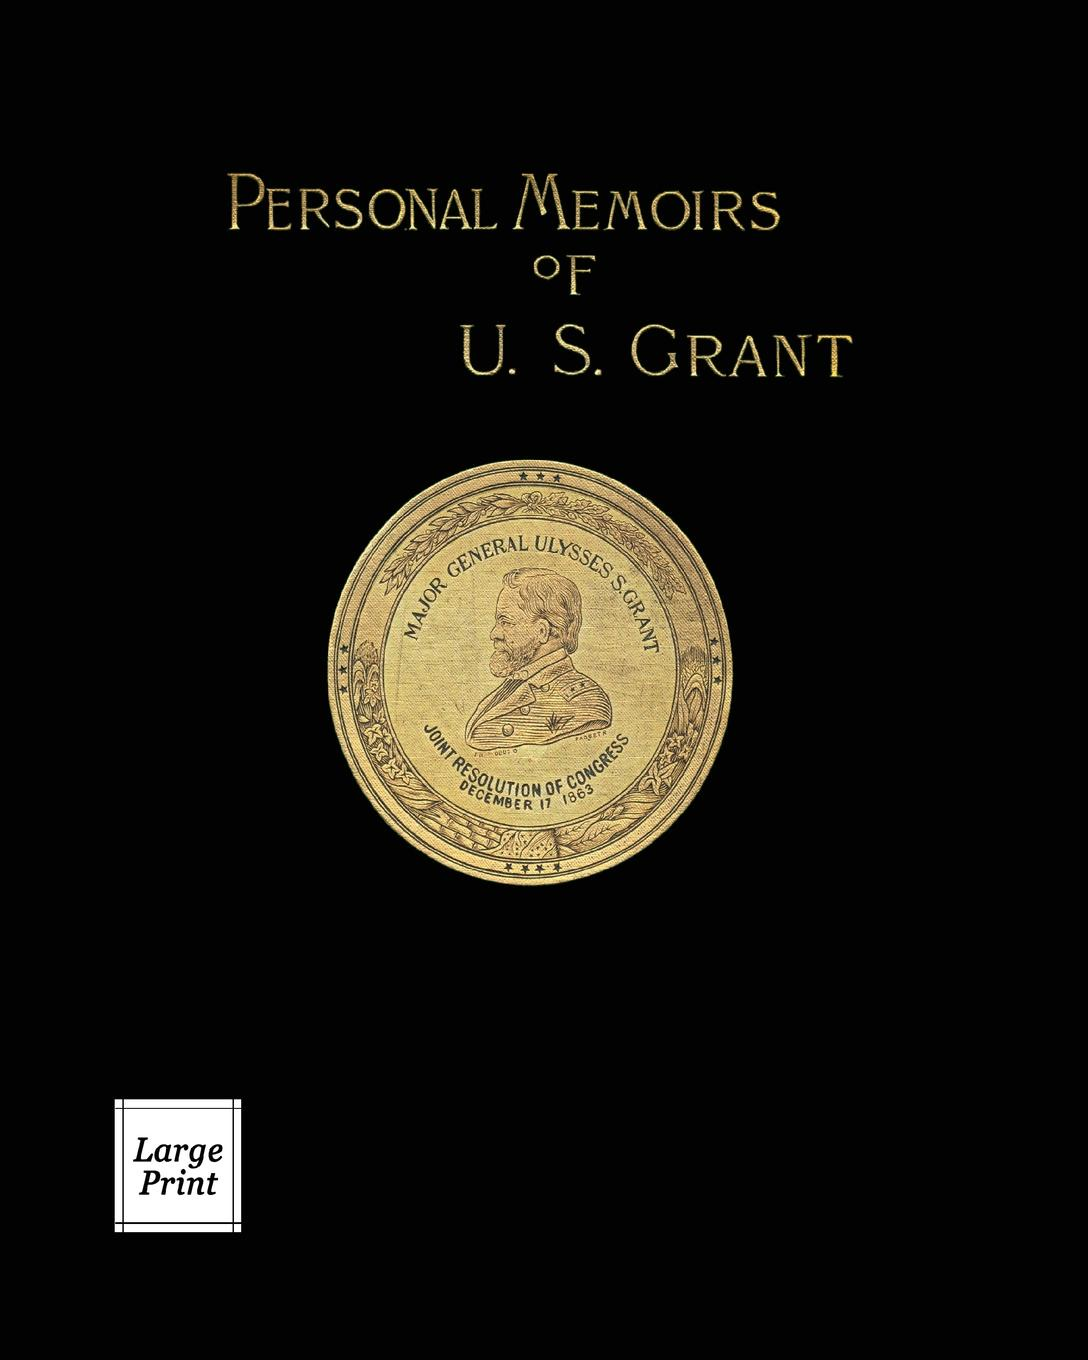 Ulysses S. Grant Personal Memoirs of U.S. Grant Volume 1/2. Large Print Edition m l abbé trochon general grant abroad a complete account of his famous trip around the world the countries visited by general grant the attentions shown him the conversations and many personal anecdotes